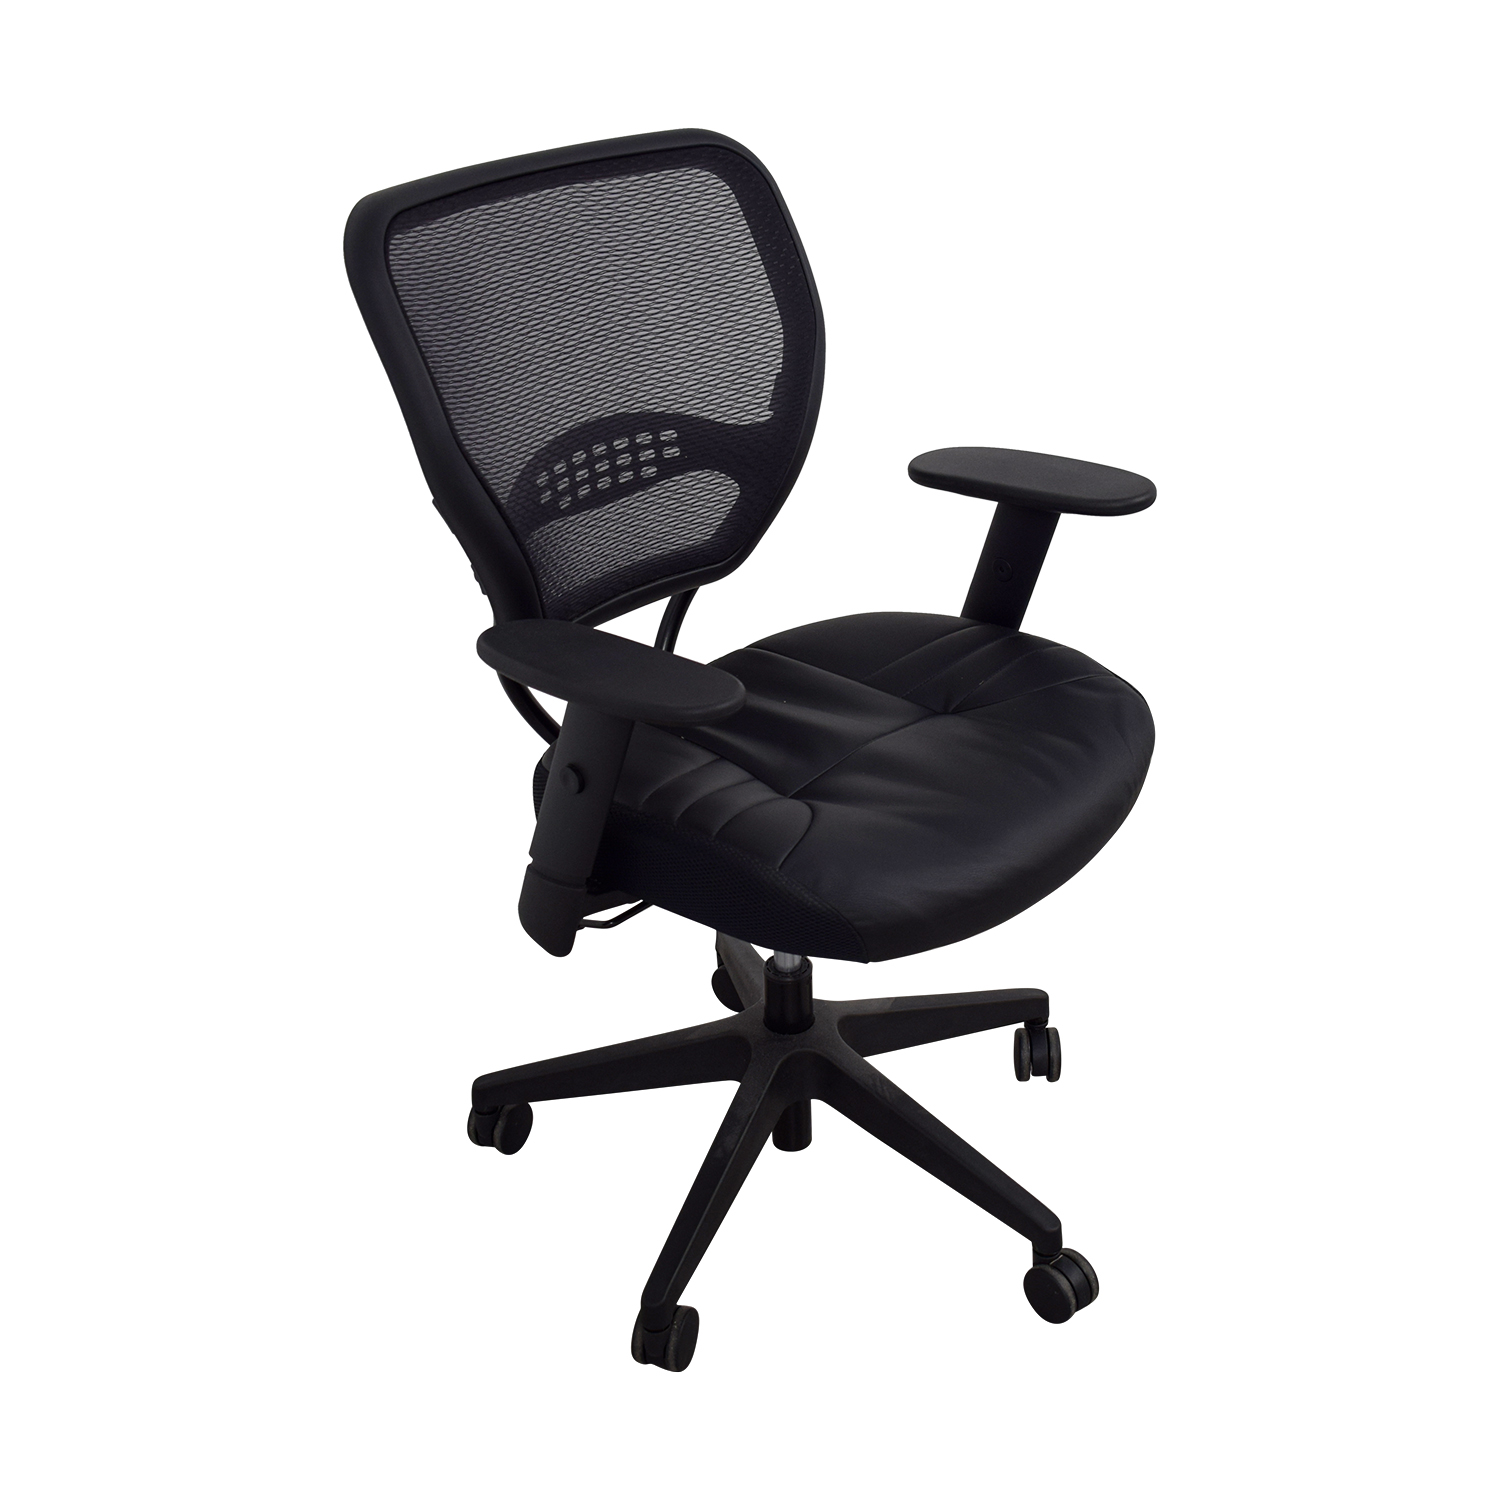 ... Buy Office Star AirGrid Black Office Chair Office Star ...